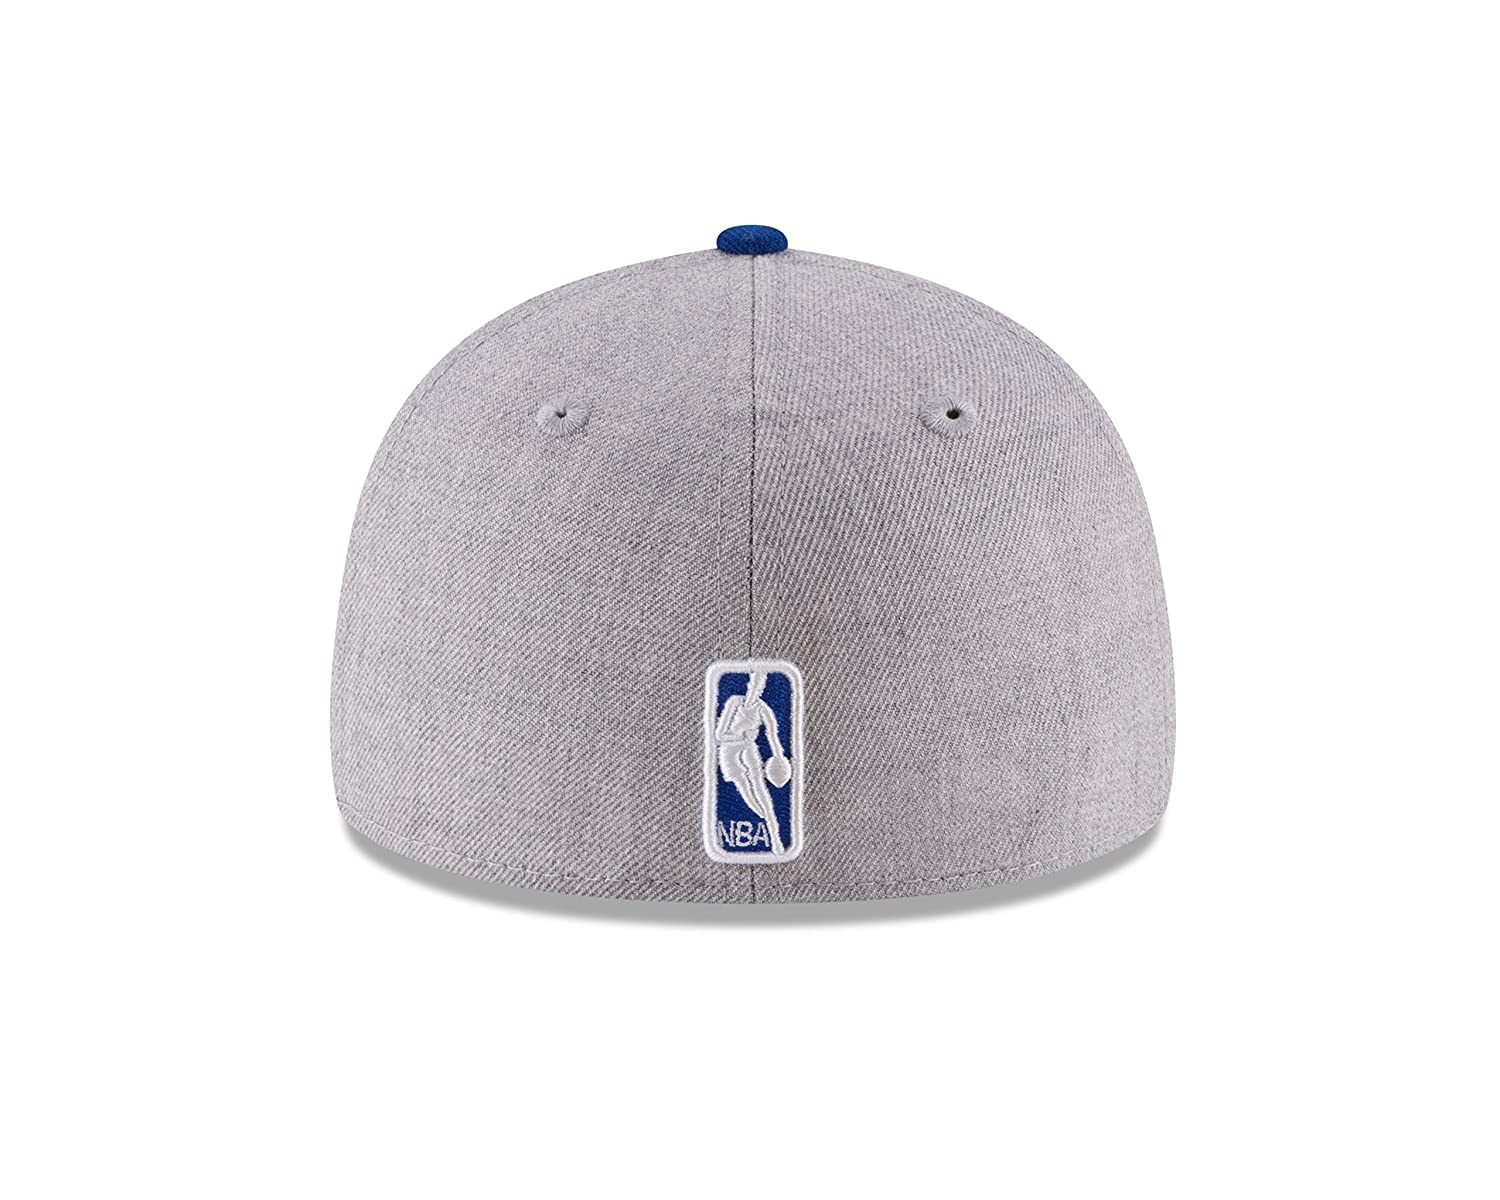 los angeles d6745 65a6e Amazon.com   NBA Men s Low Profile 59FIFTY Fitted Cap   Clothing